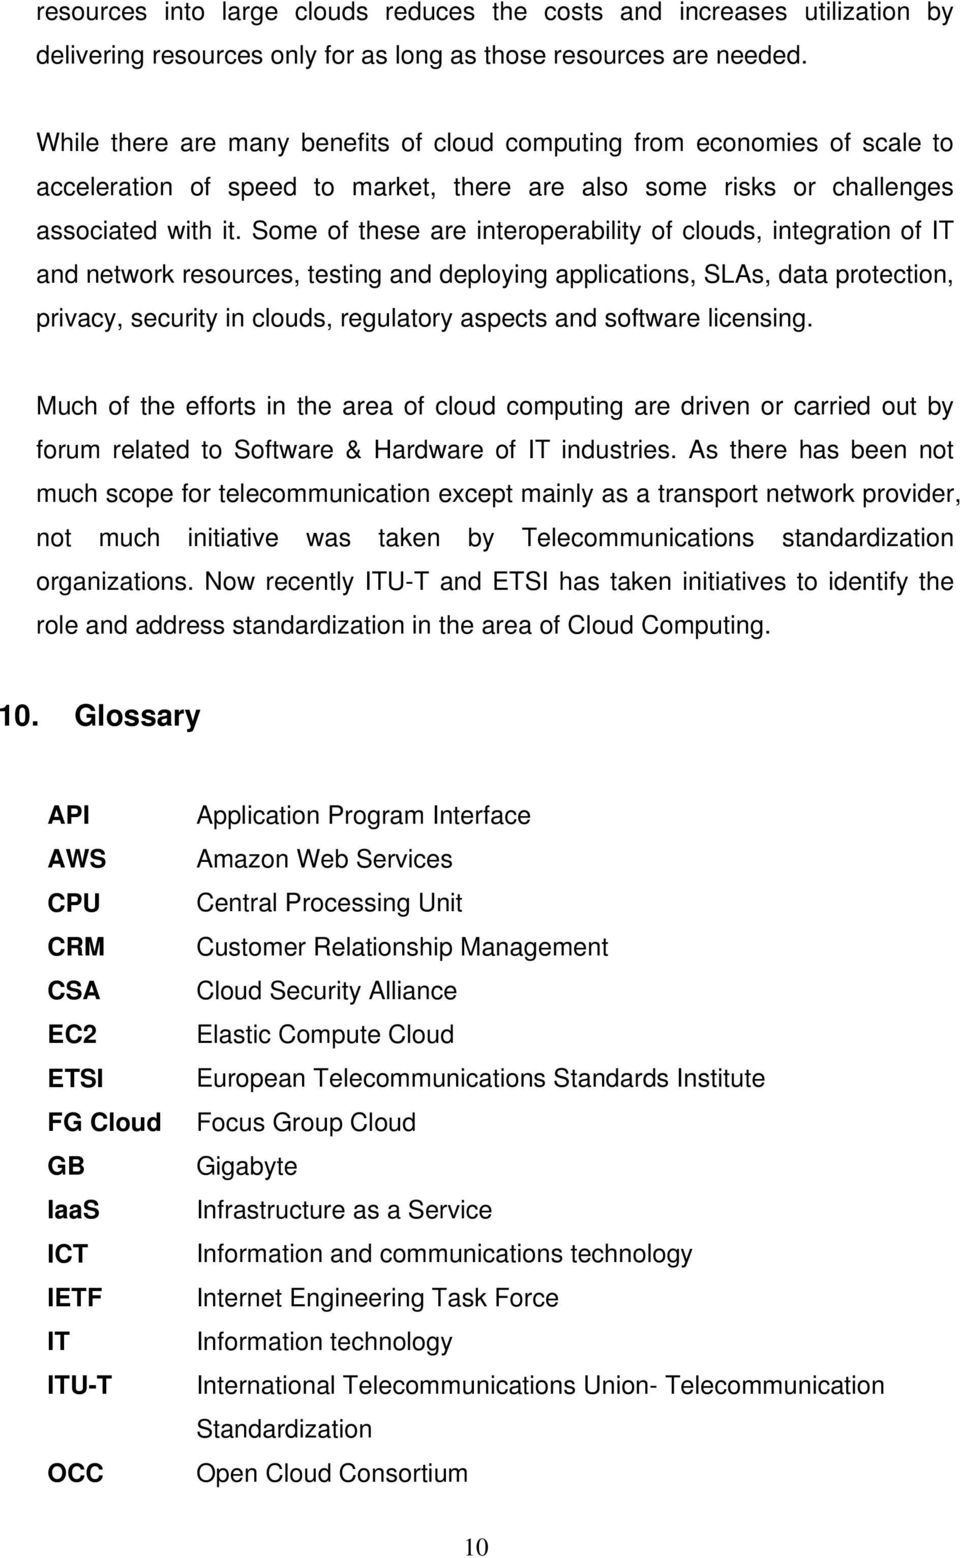 Some of these are interoperability of clouds, integration of IT and network resources, testing and deploying applications, SLAs, data protection, privacy, security in clouds, regulatory aspects and